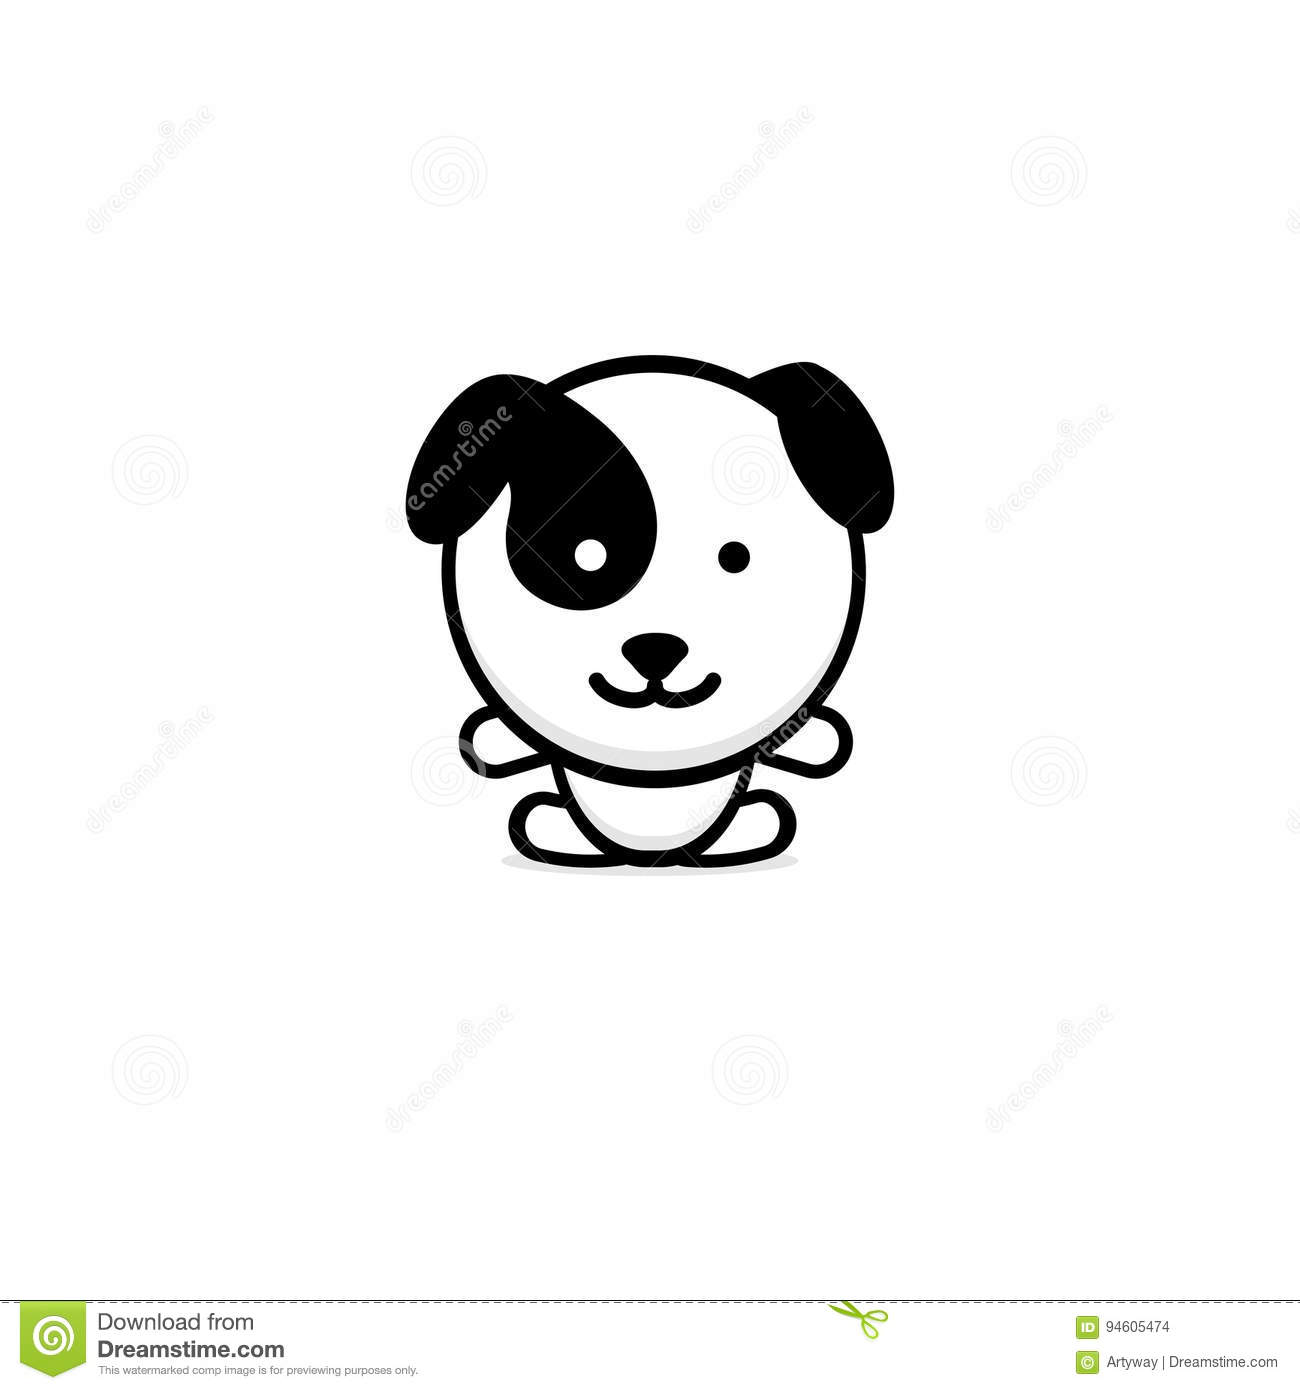 Cute Dog Vector Illustration Baby Puppy Logo New Design Art Pet Black Color Sign Simple Image Picture With Animal Stock Vector Illustration Of Drawing Little 94605474